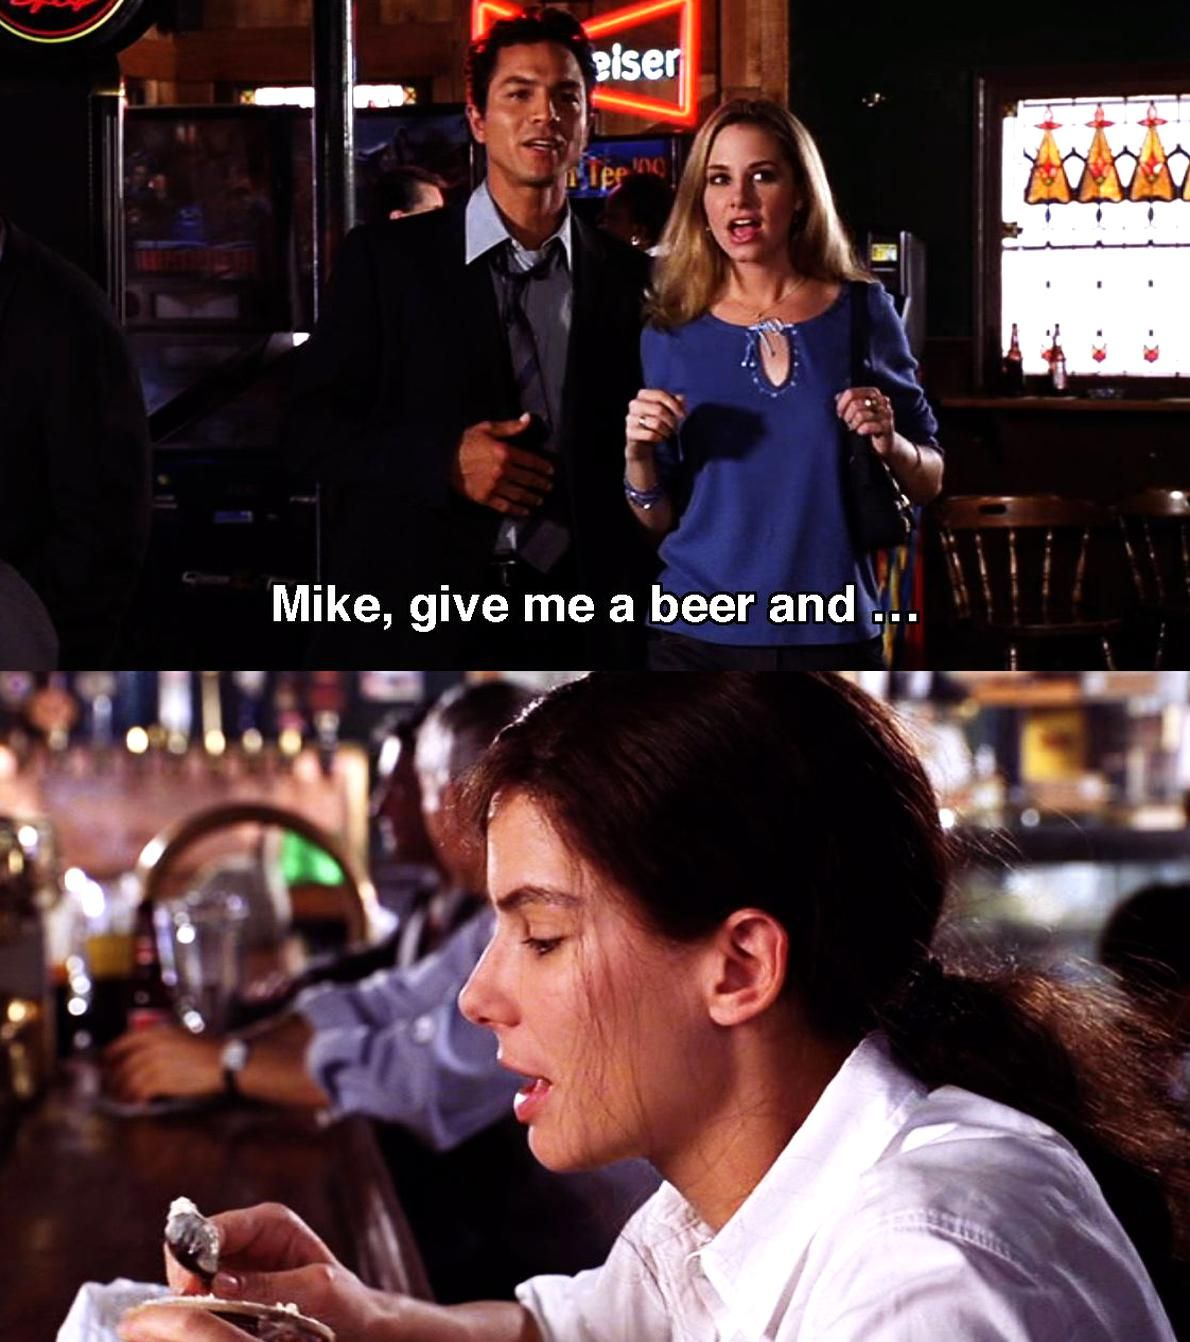 Give Me A Beer And Miss Congeniality 2000 Movie Quotes Amusementphile In 2020 Miss Congeniality 2000 Miss Congeniality Movie Quotes